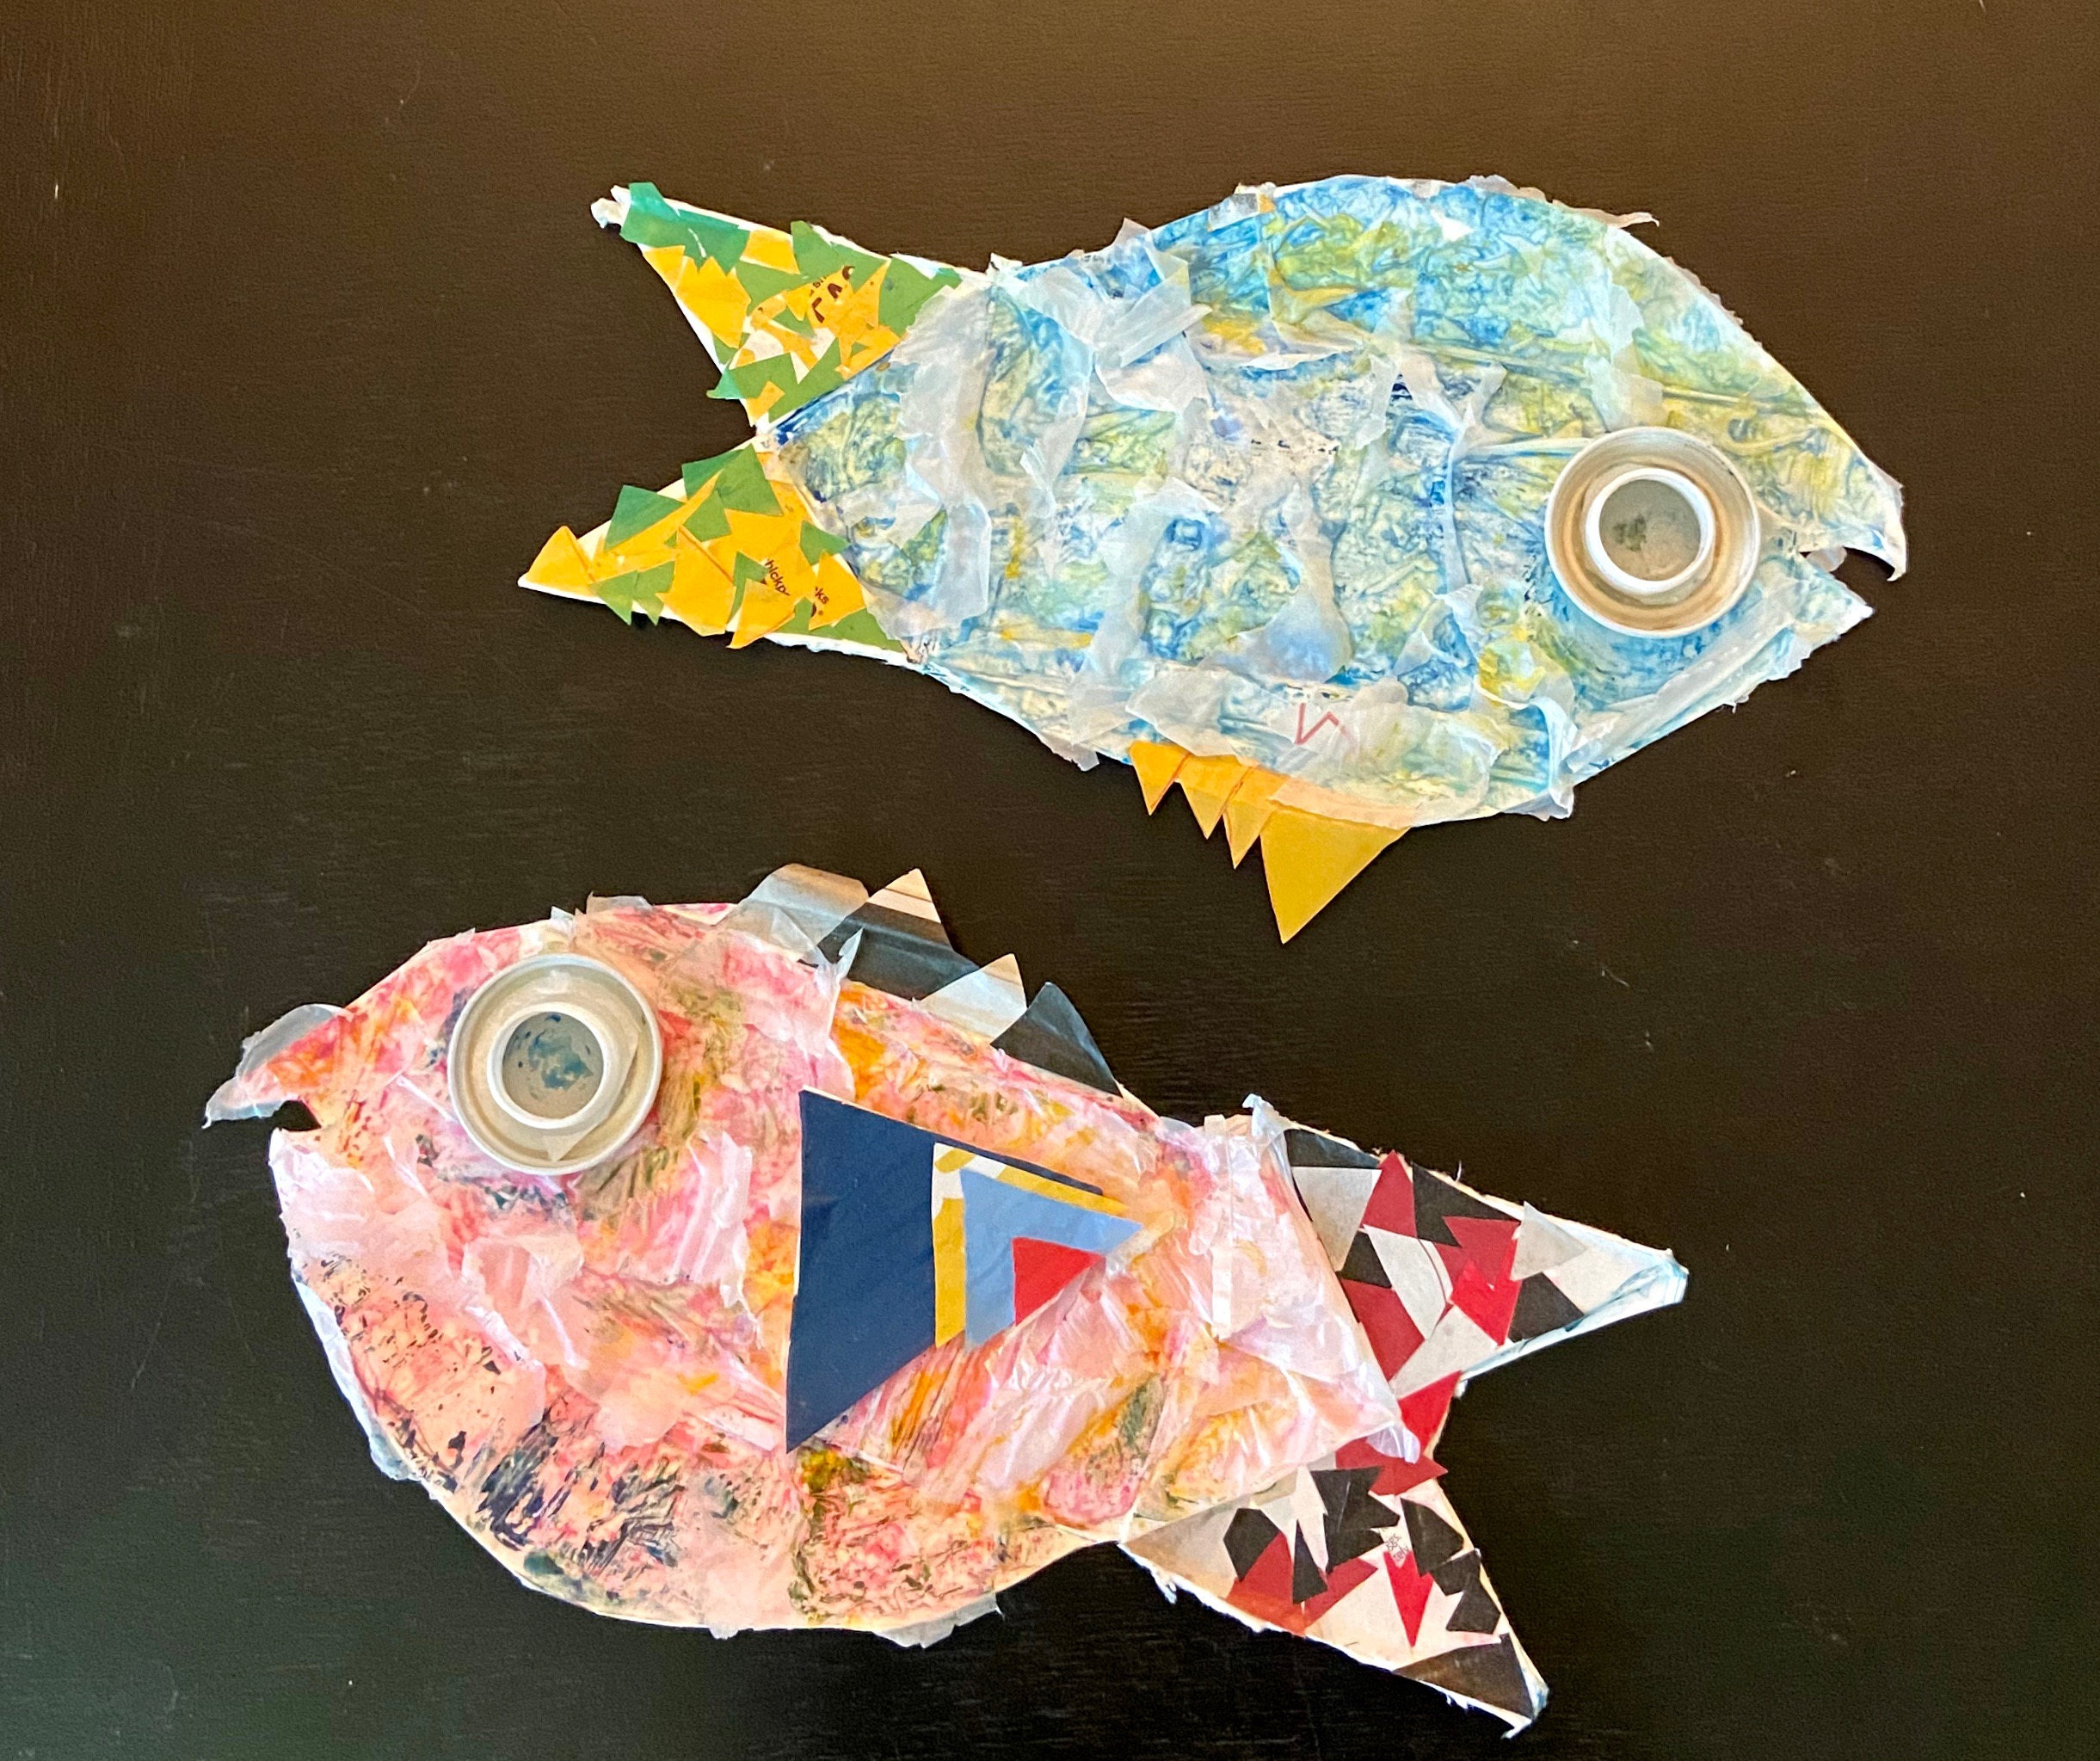 Rodney McCoubrey Inspired Recycled Fish